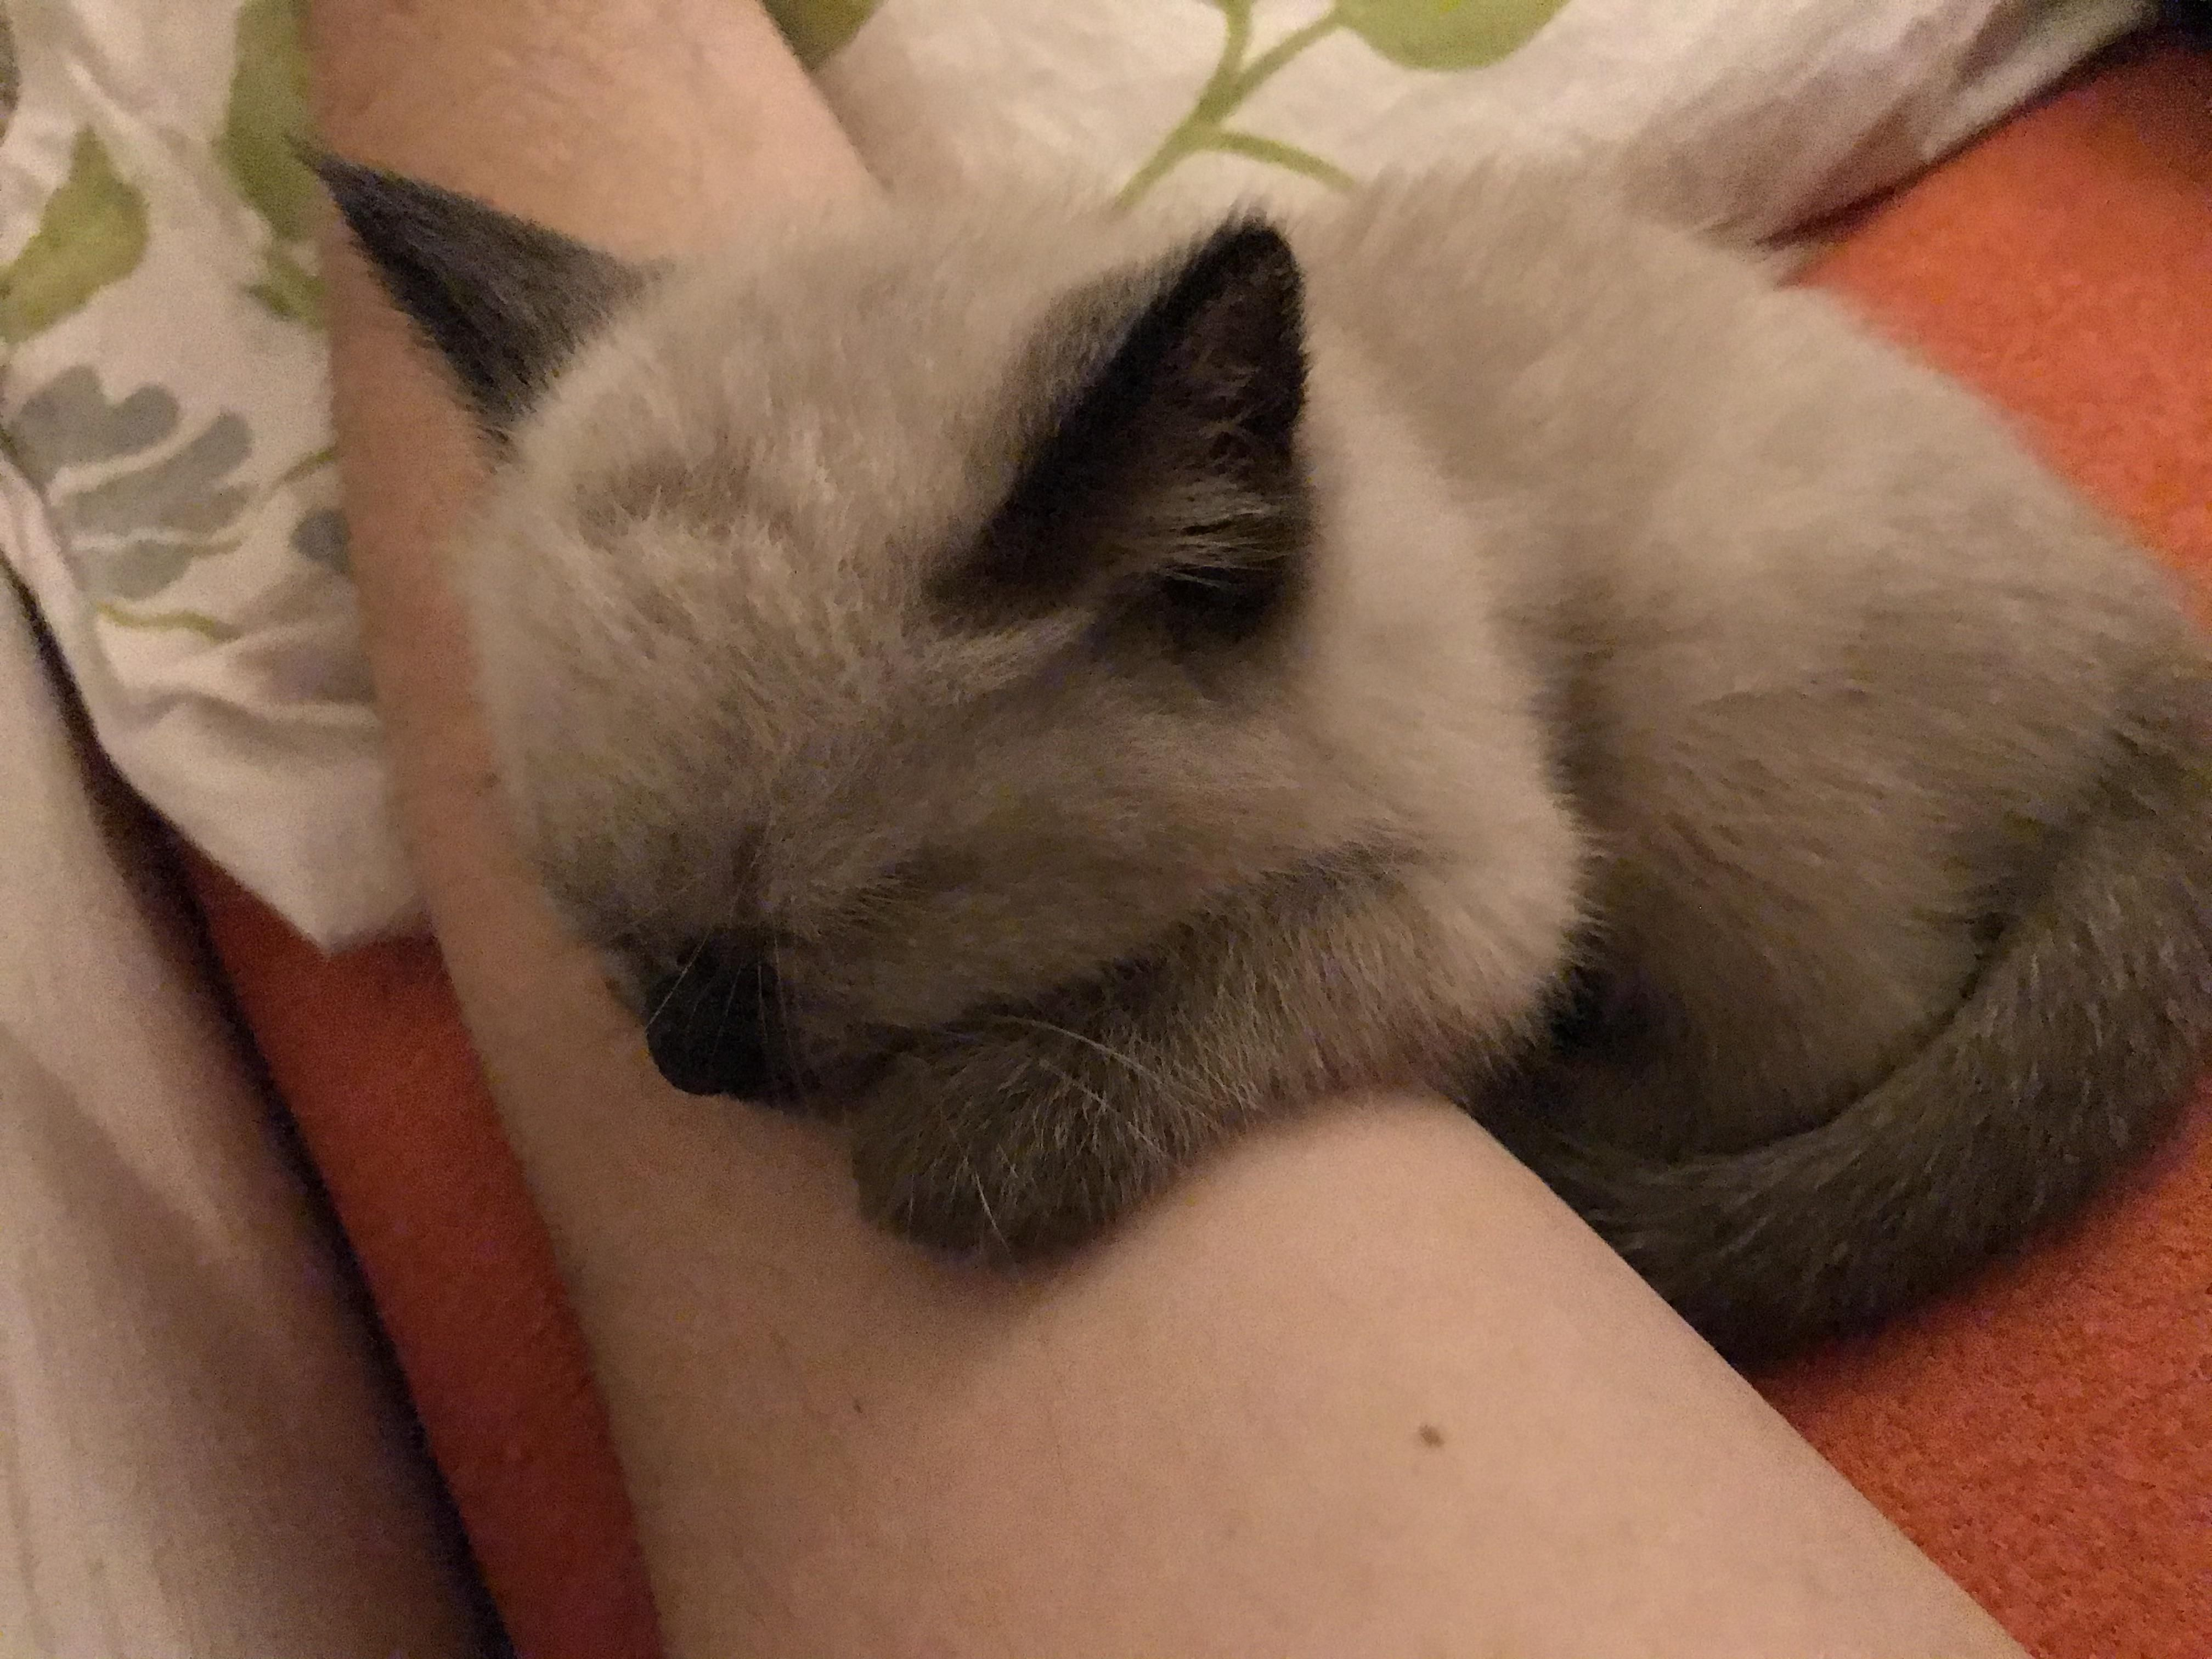 Real Estate Marketing Reviews My New Kitten Finally Began To Like Me And Fell Asleep On My Arm Can T Move Now In 2020 Cute Animals Kitten Aww